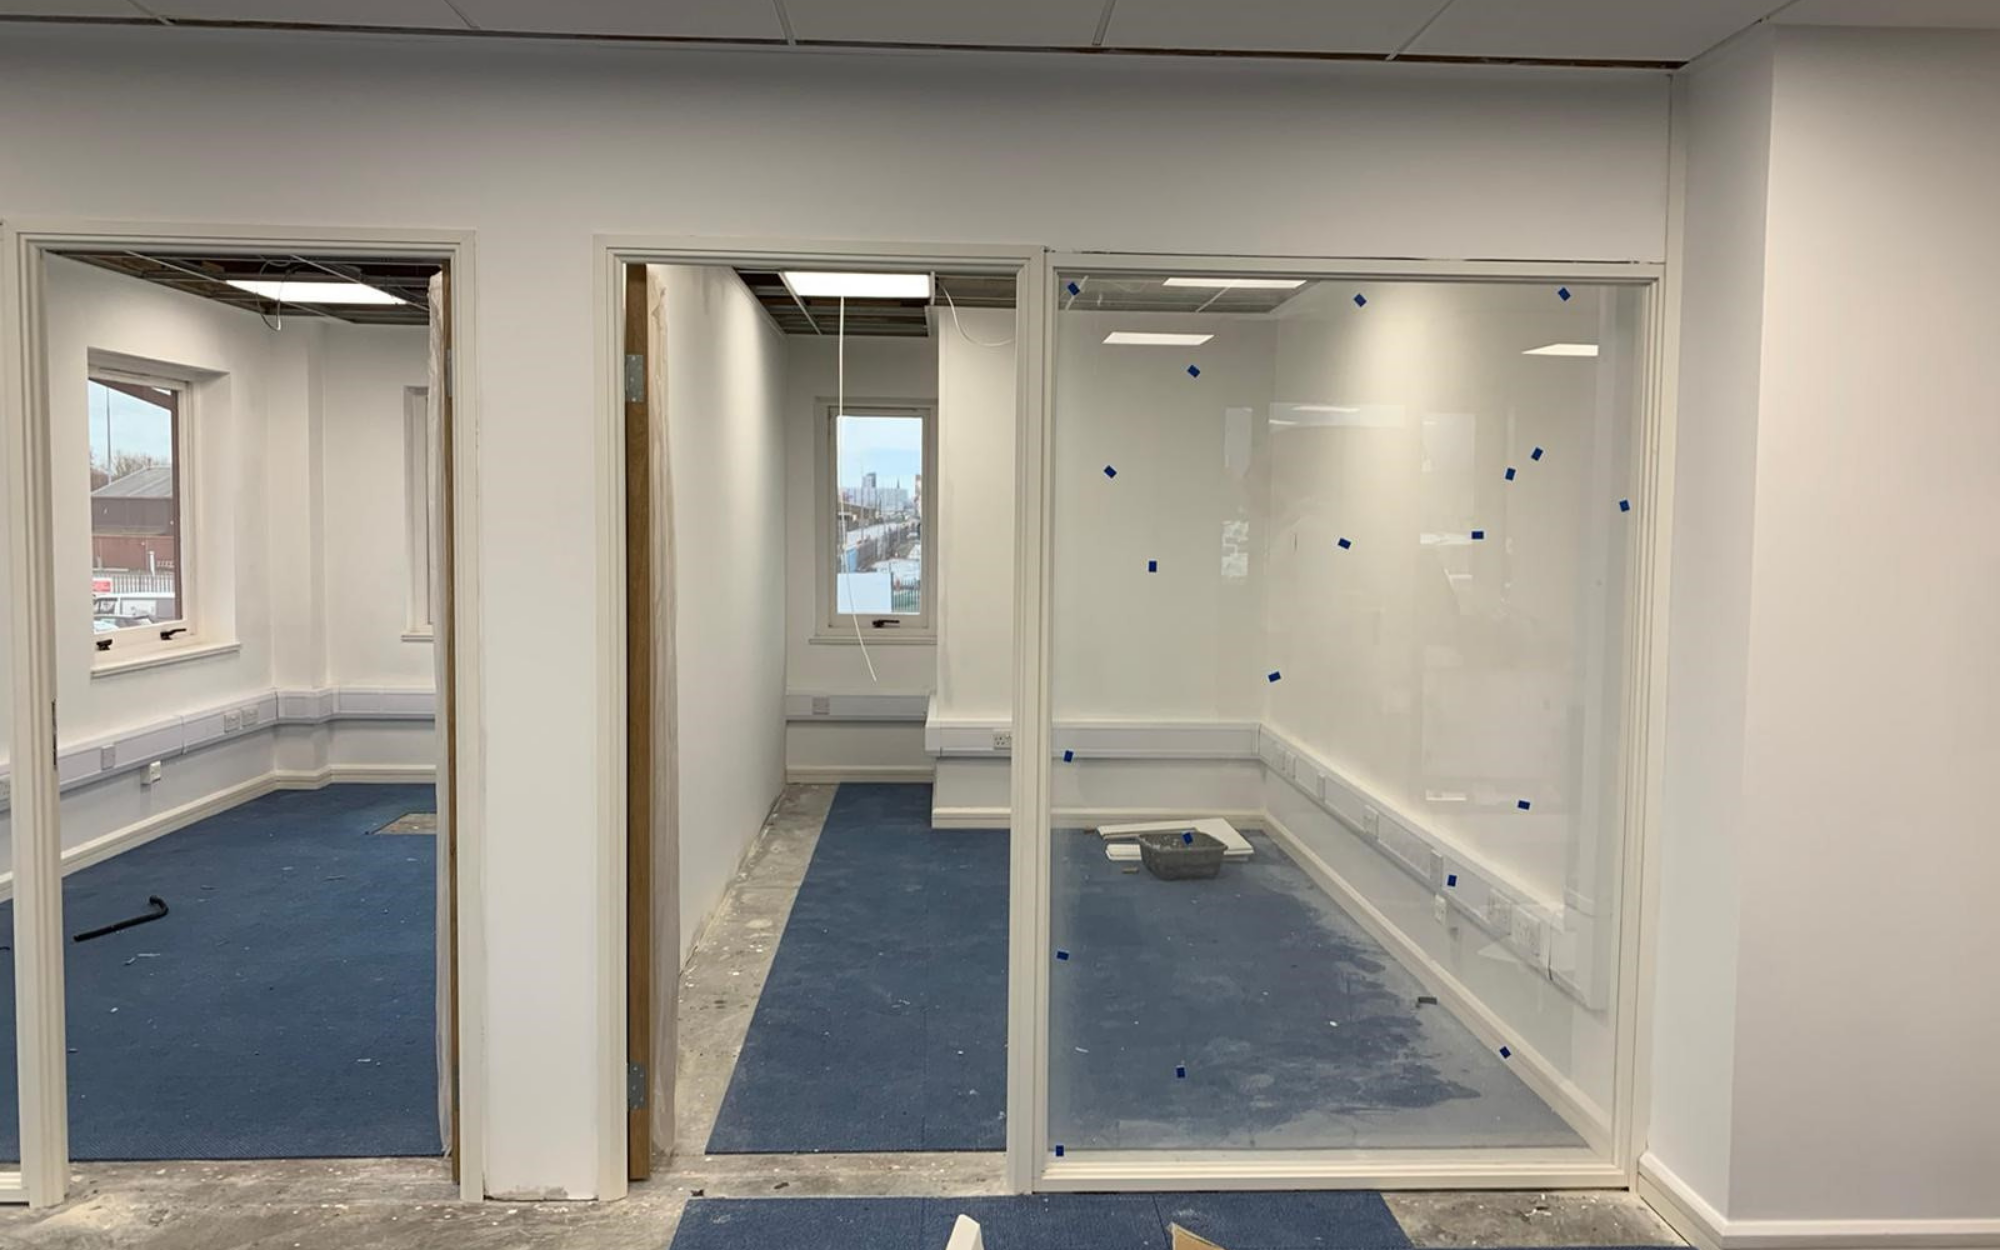 Glazed partitions to the offices